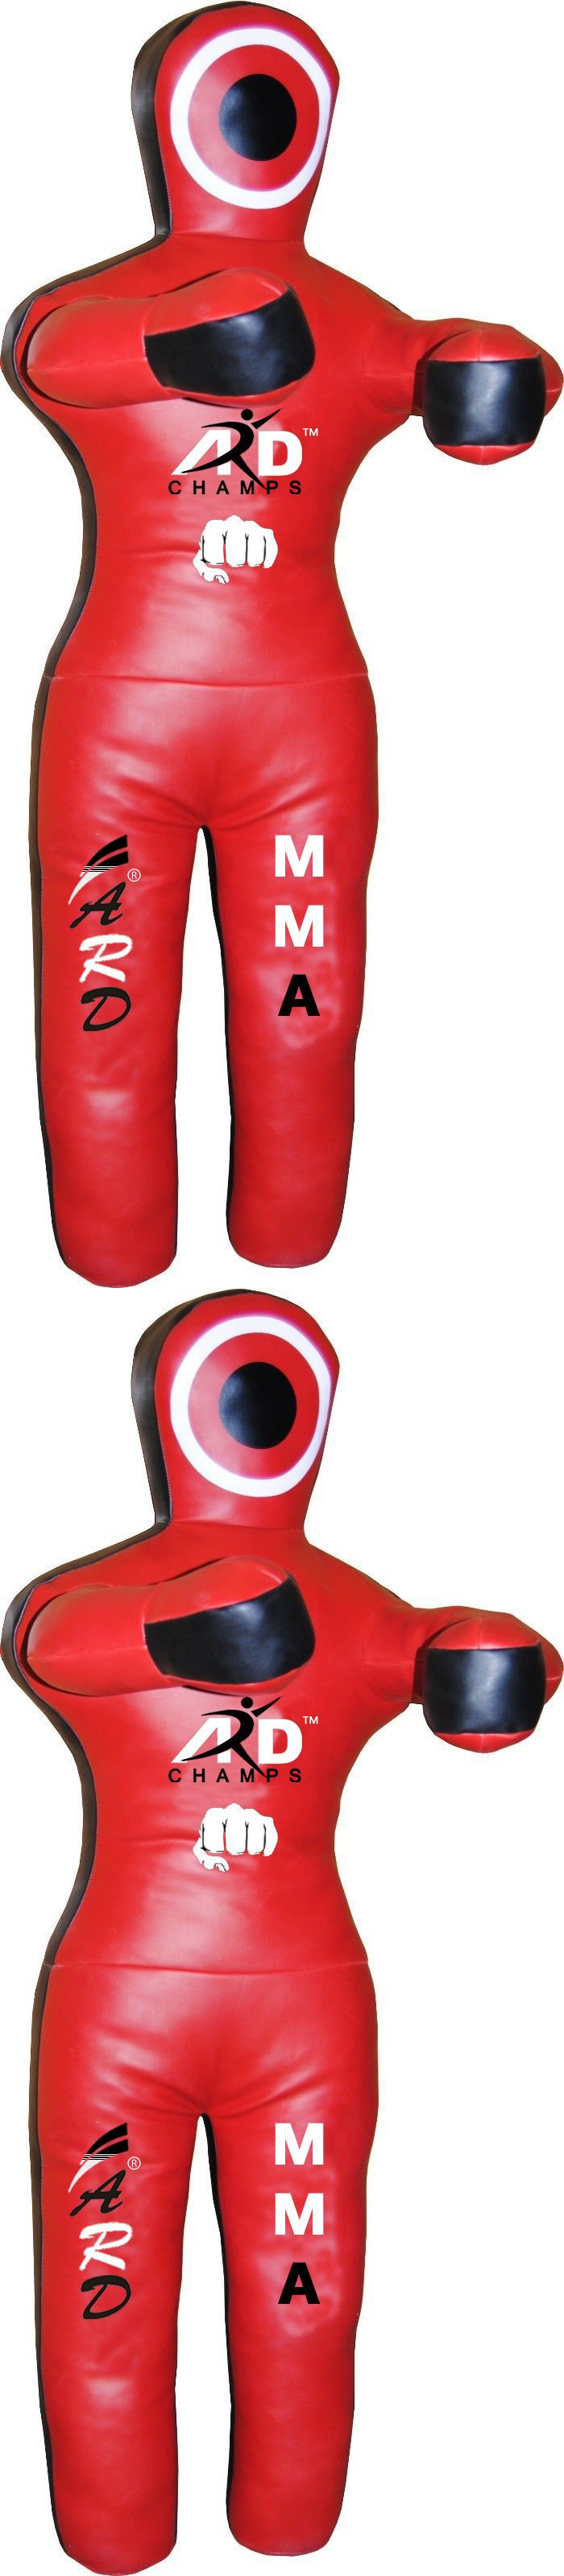 Dummies 179786: 2Fit™ Brazilian Jiu Jitsu Red Leather Grappling Dummy Mma Wrestling Martial Arts BUY IT NOW ONLY: $86.99